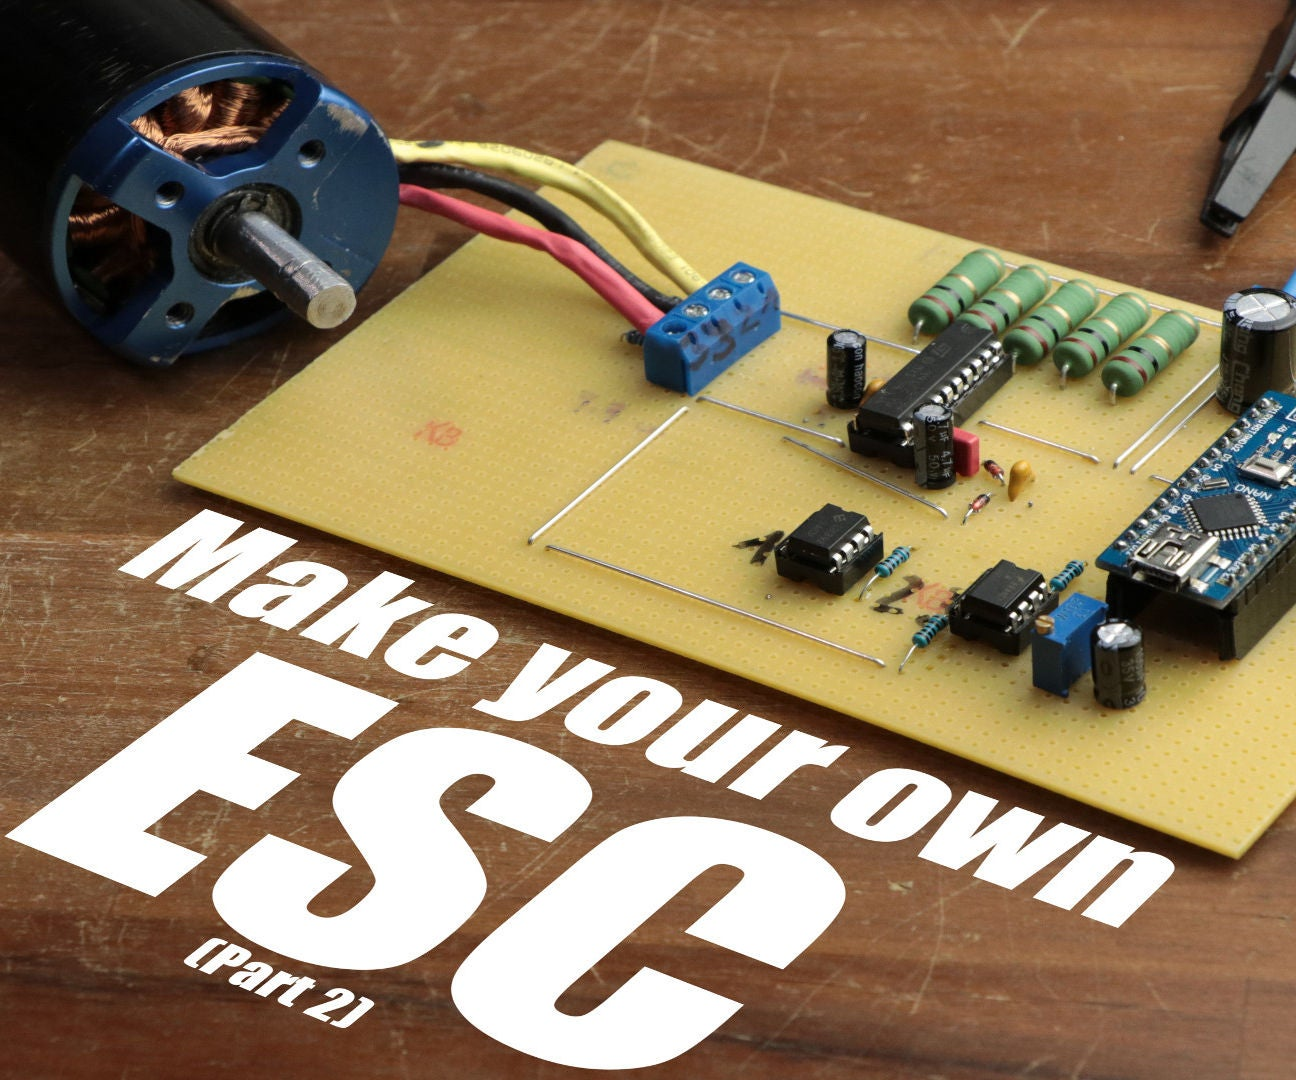 Make Your Own Esc 5 Steps With Pictures Circuit The Simulation Consist Of A Microcontroller Chip Pic